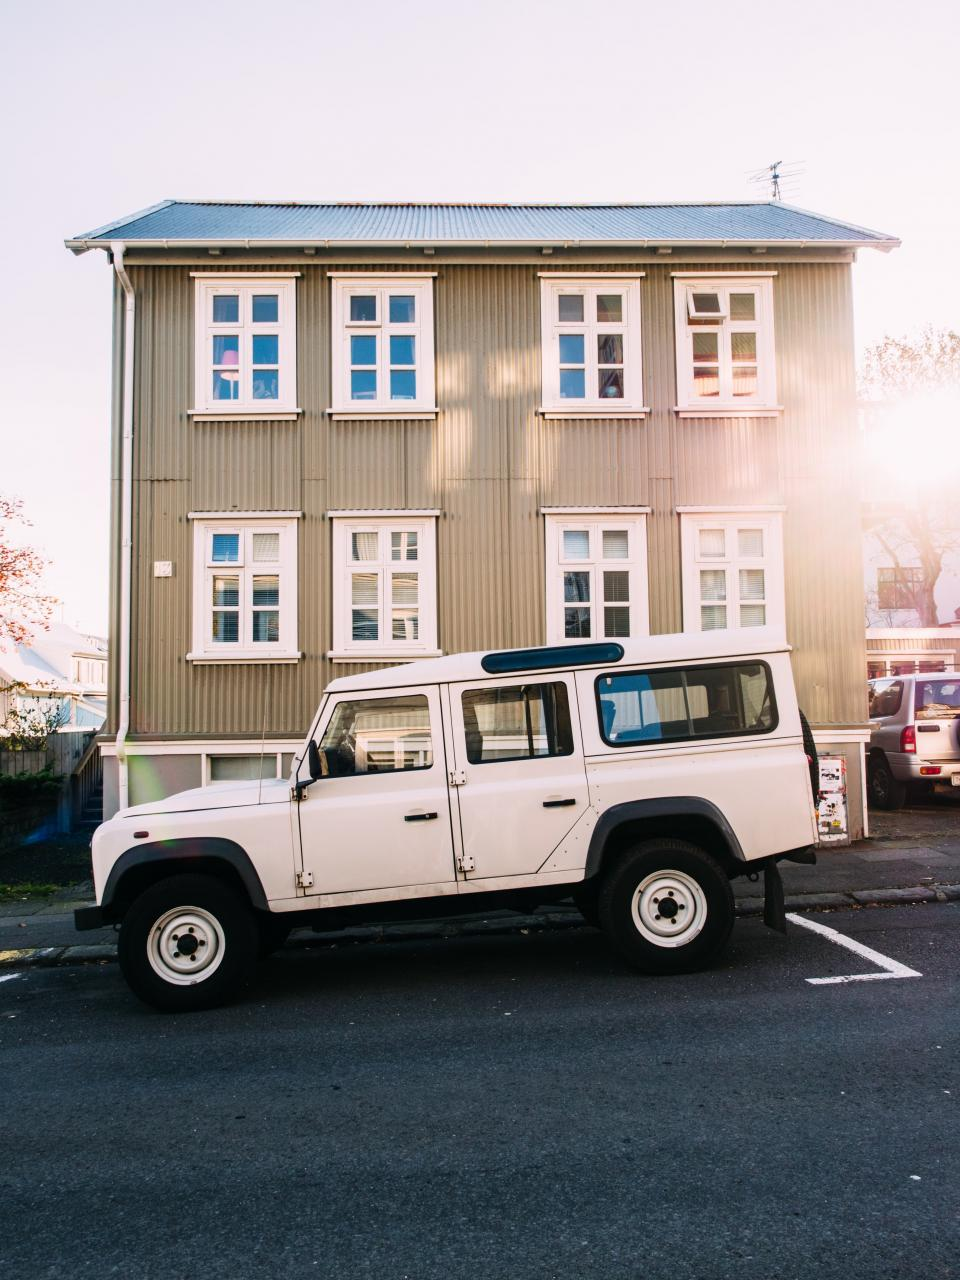 white, suv, truck, hummer, wheels, tires, road, street, sidewalk, building, windows, roof, paneling, house